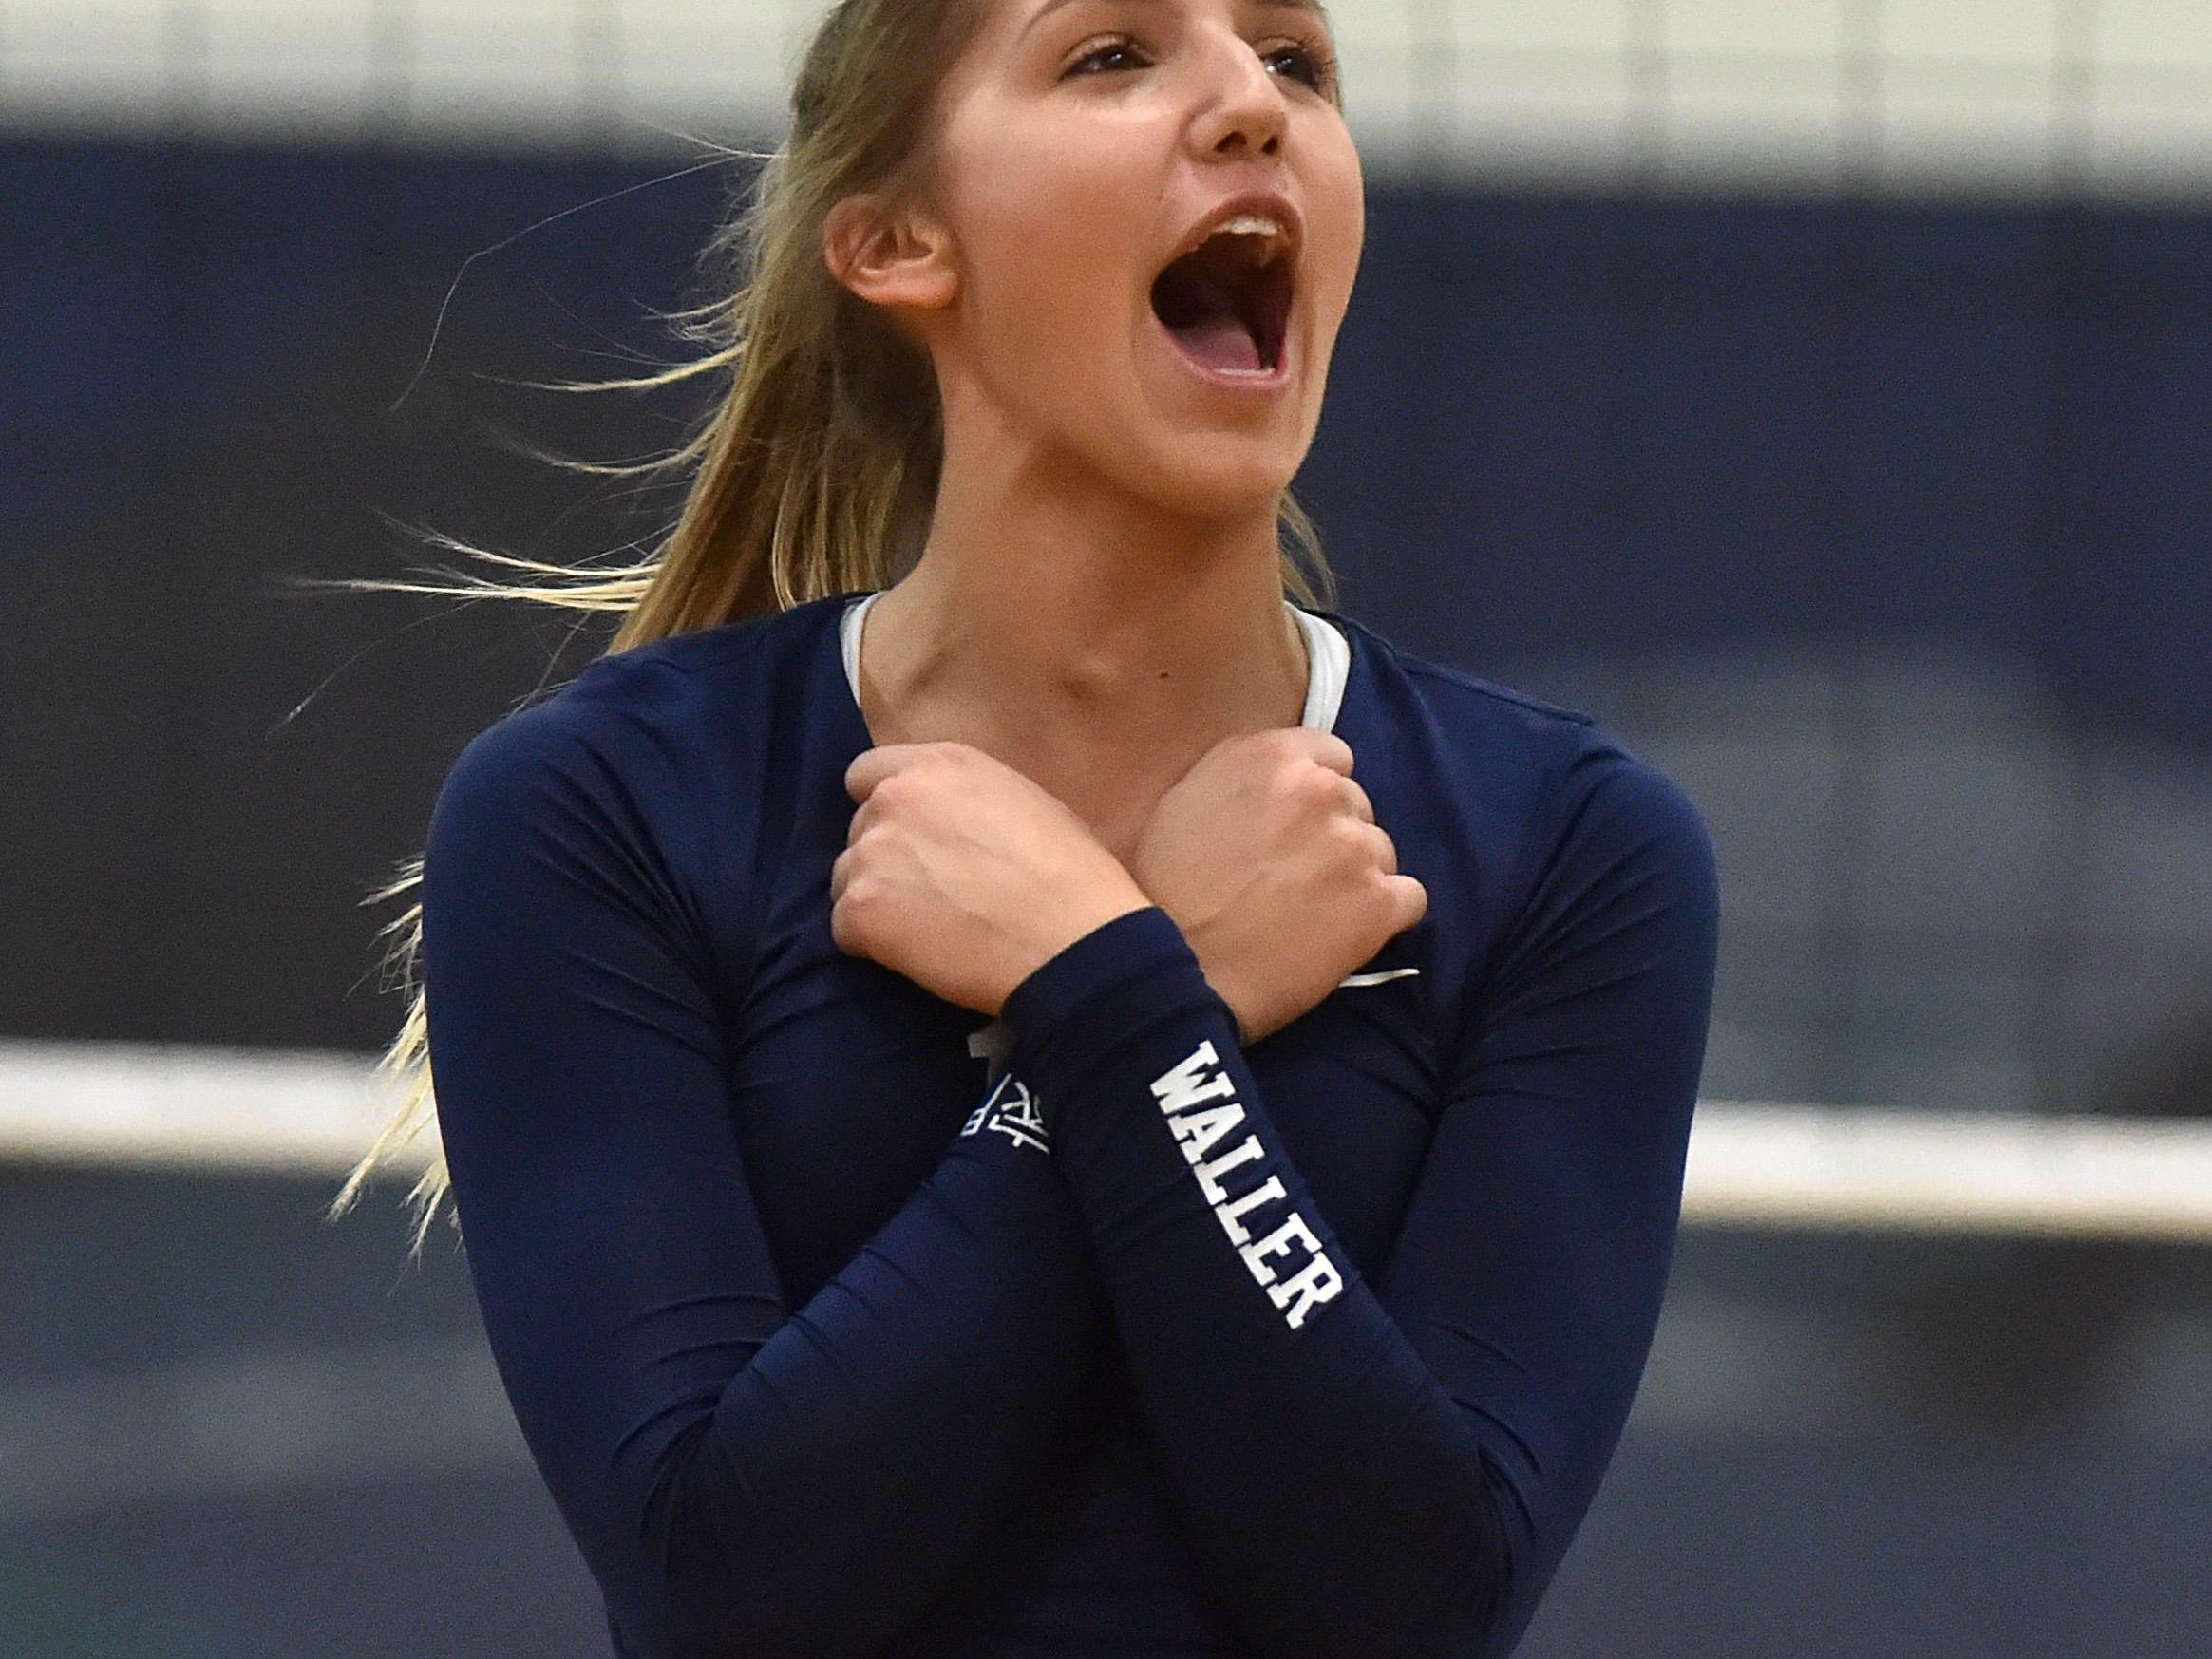 Damonte Ranch's Morgan Waller celebrates during the Mustangs' match against Douglas on Oct. 27.